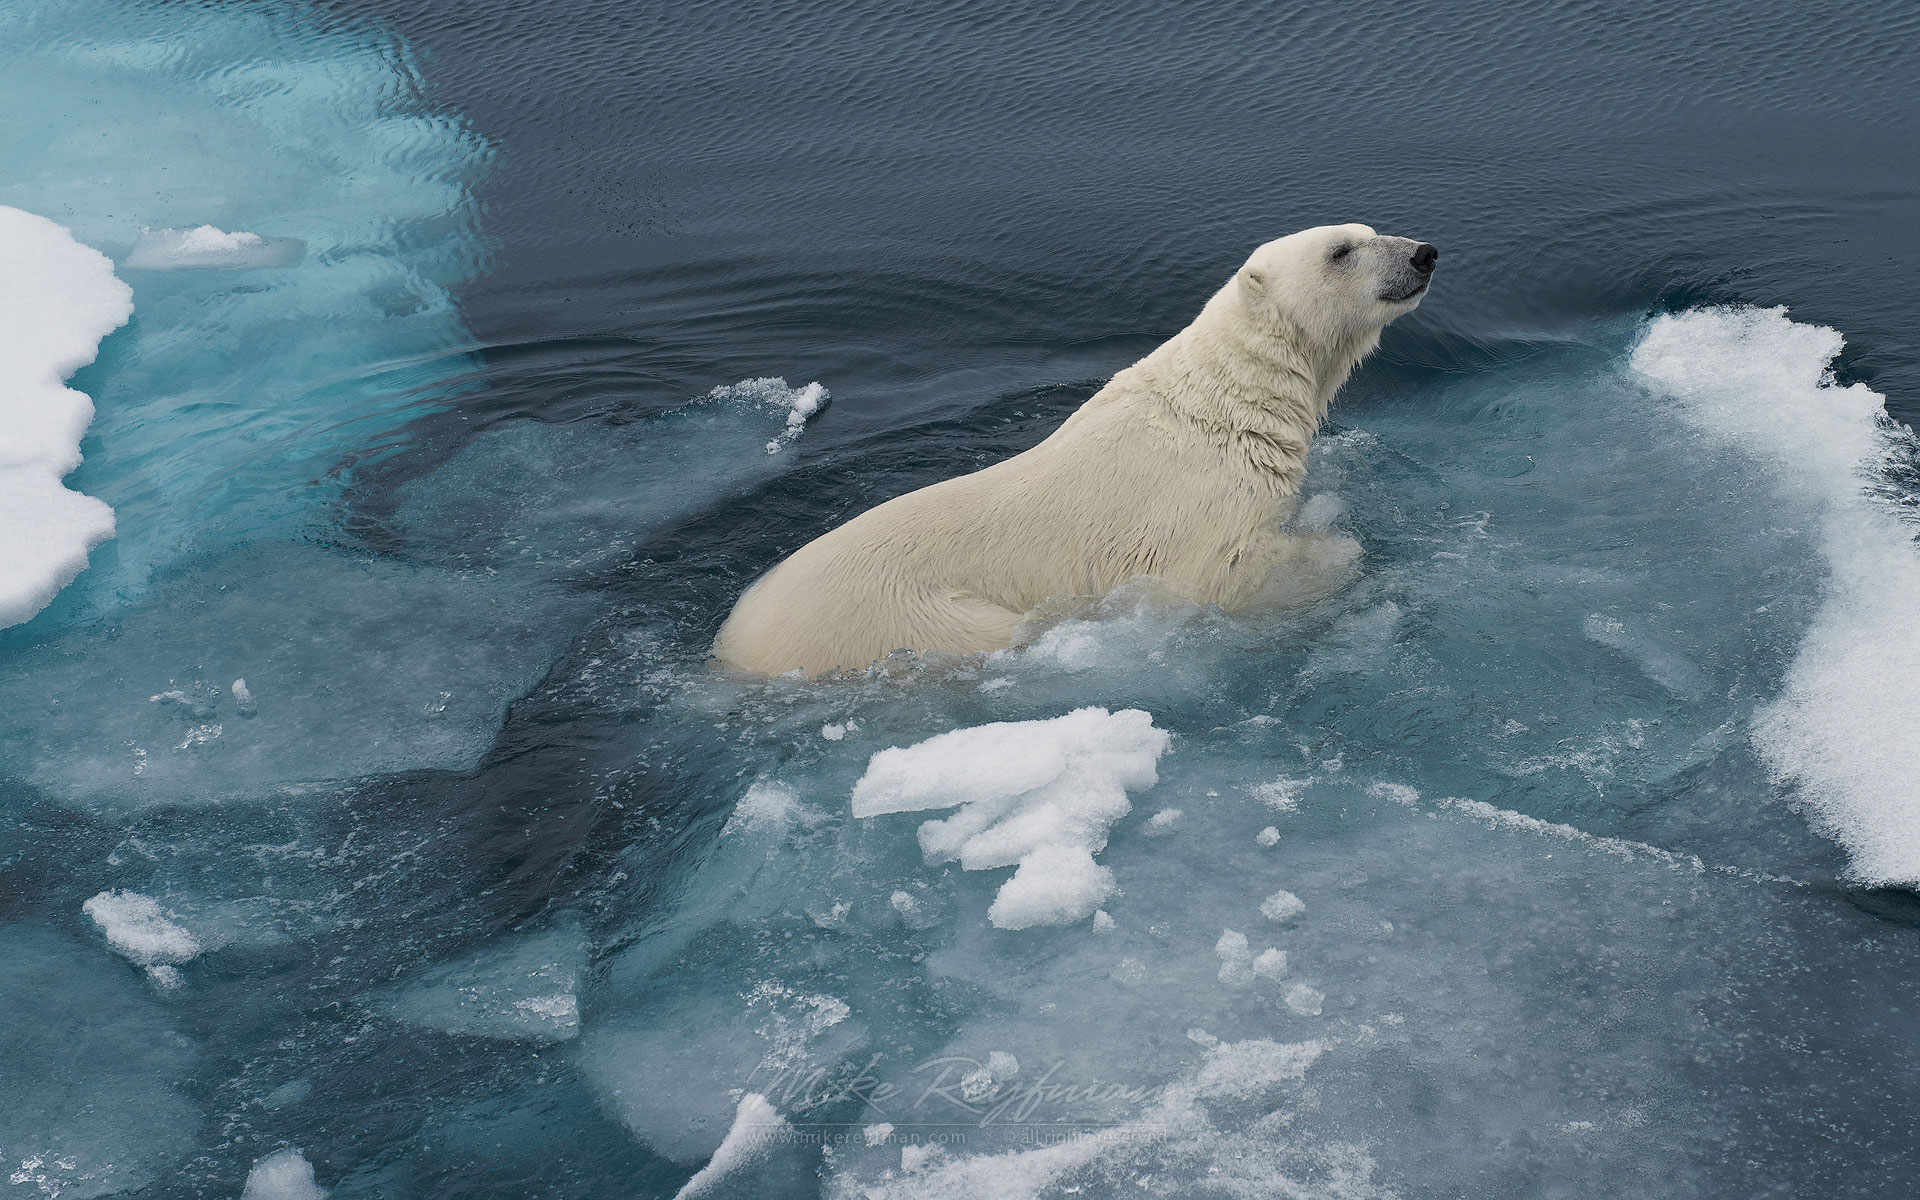 Swimming polar bear. Svalbard, Norway. 81st parallel North. - Polar-Bears-Svalbard-Spitsbergen-Norway - Mike Reyfman Photography